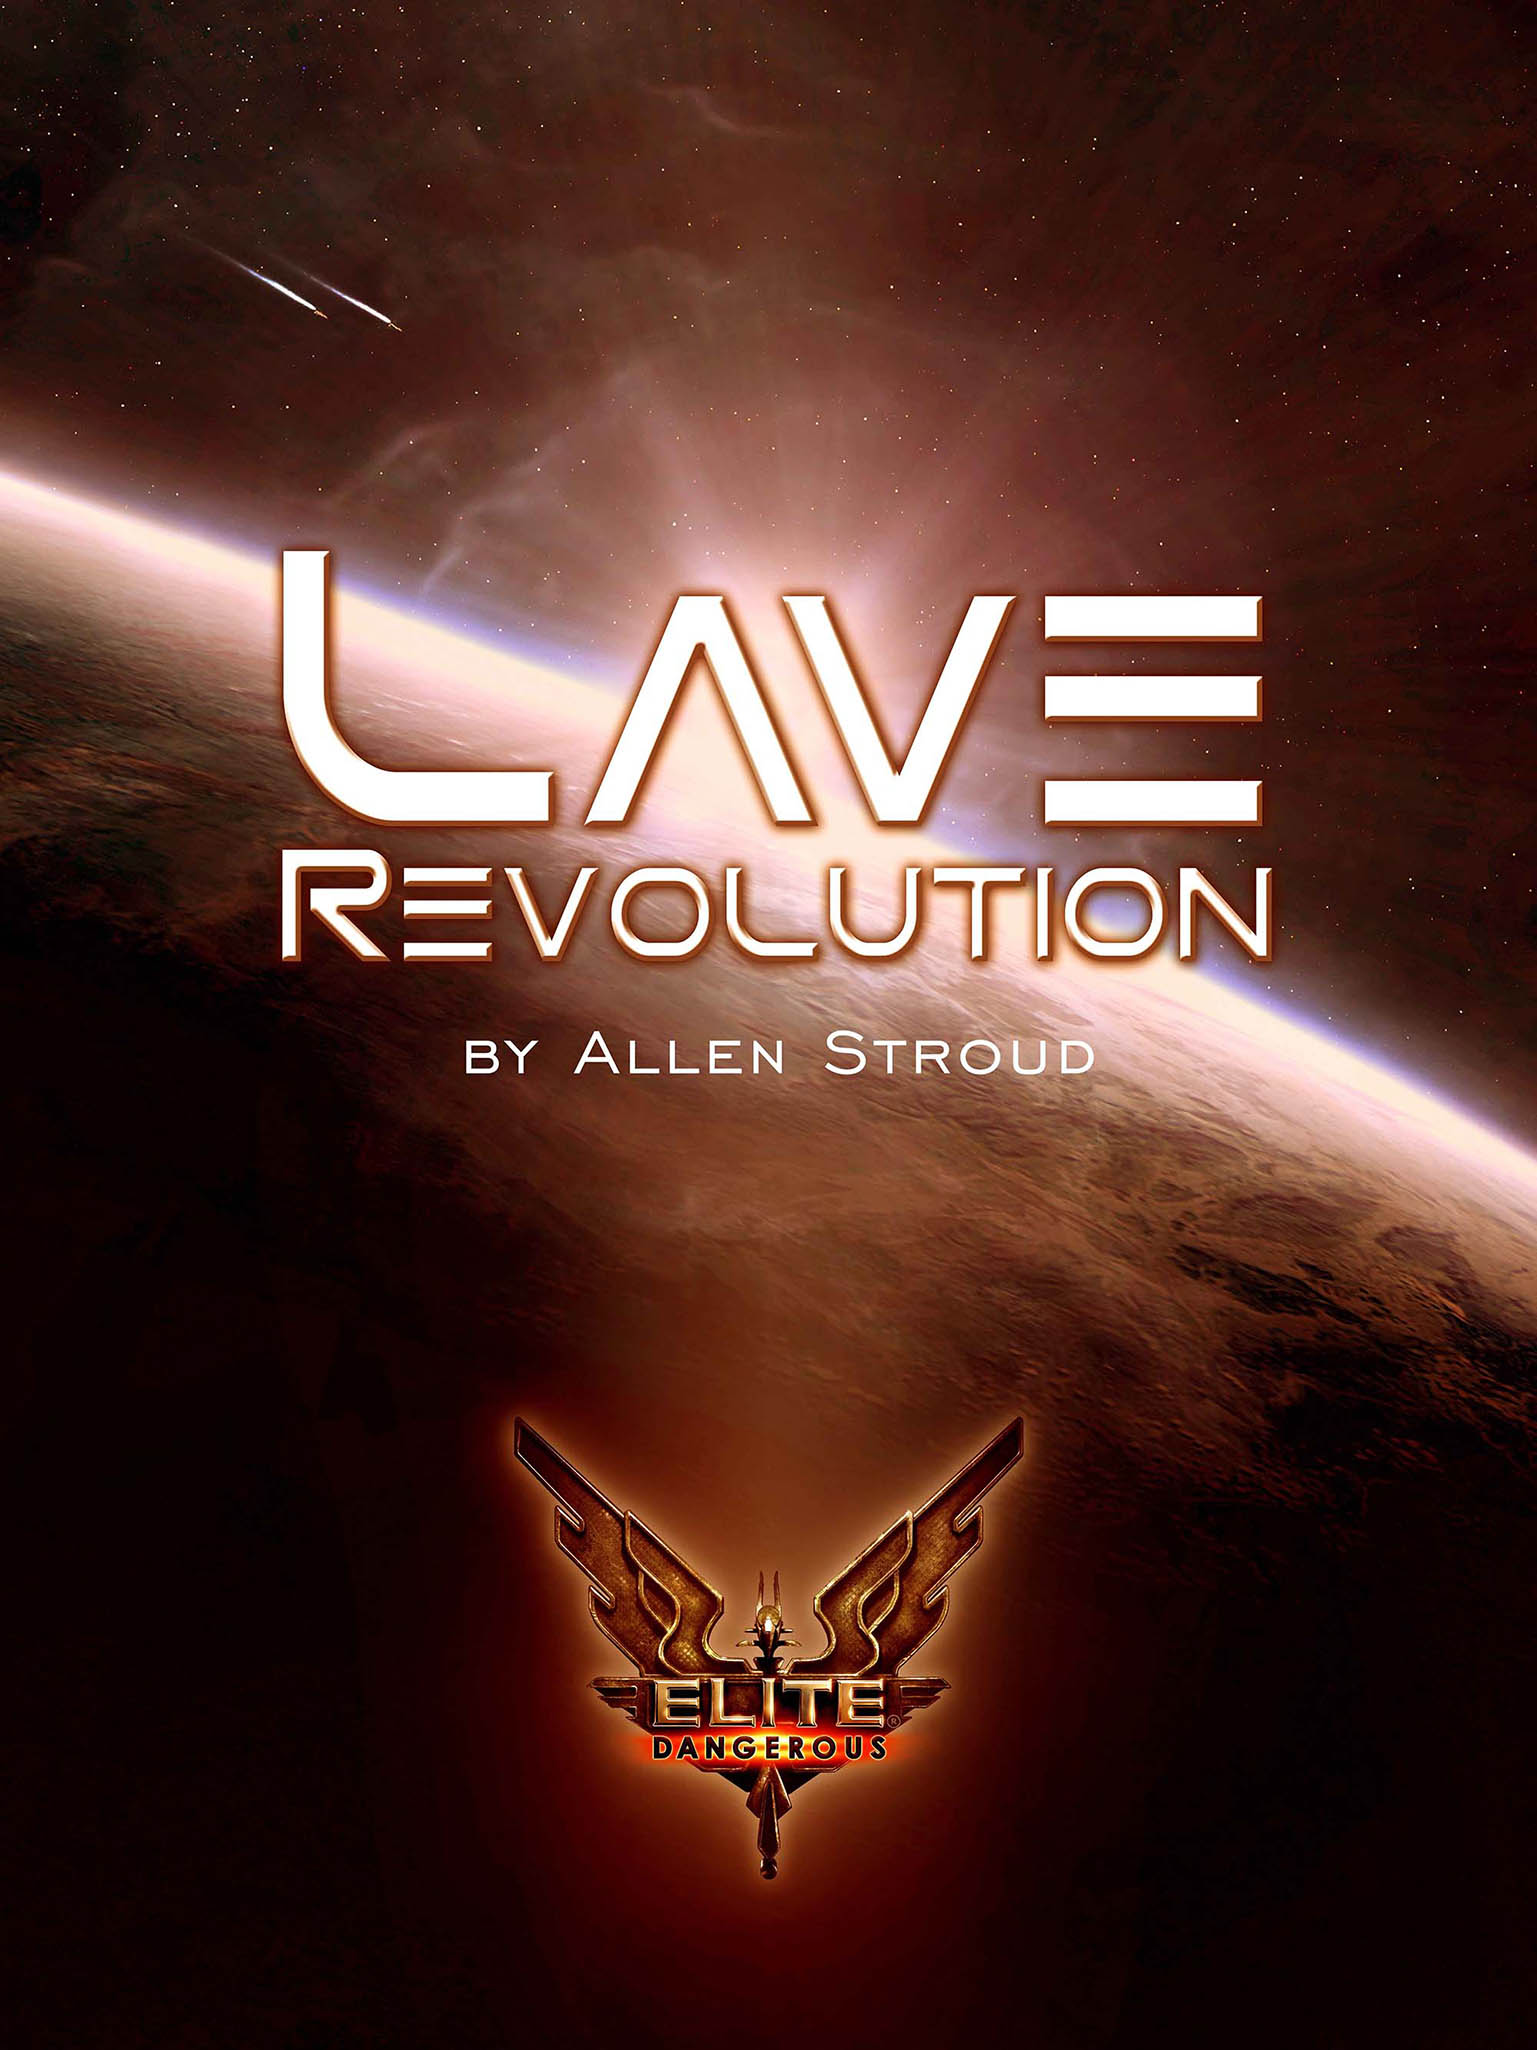 Elite: Lave Revolution by Allen Stroud